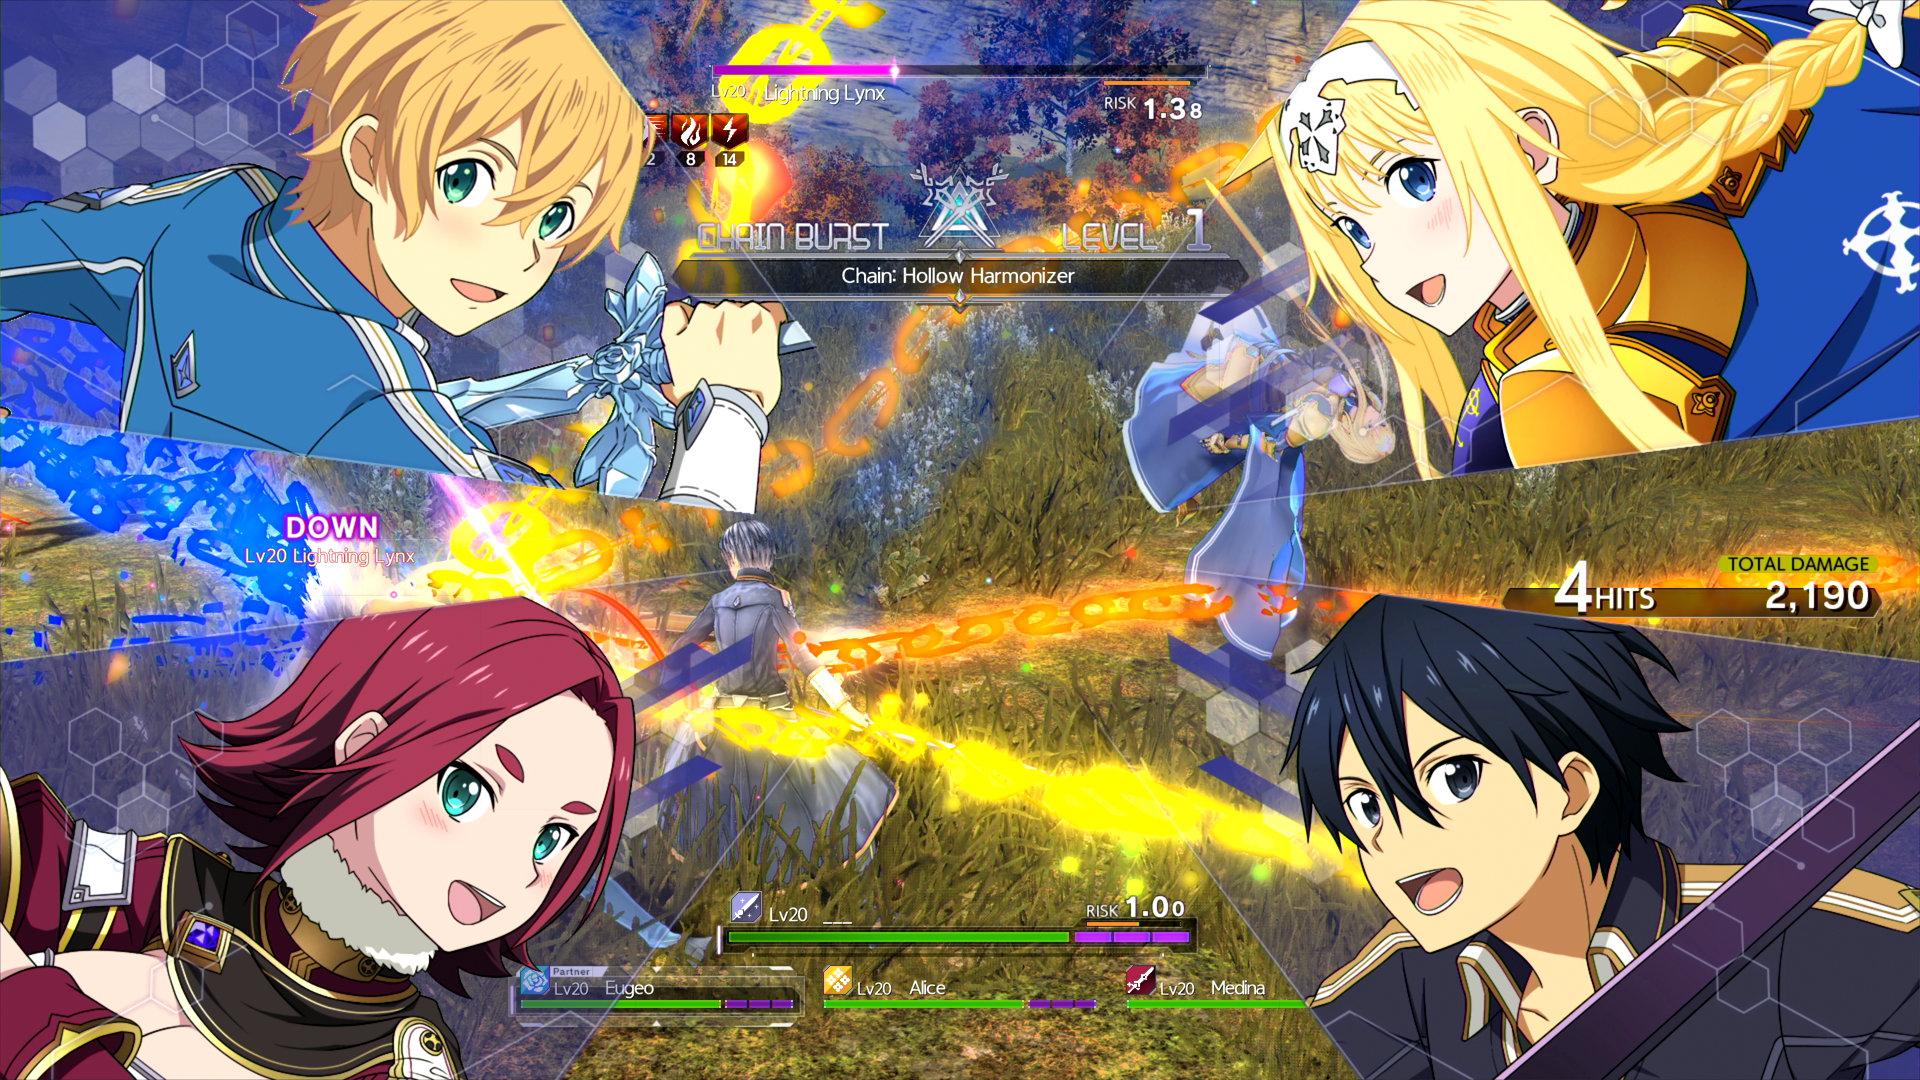 MORE STORY & GAME SYSTEM REVEALED IN LATEST TRAILER OF SWORD ART ONLINE ALICIZATION LYCORIS